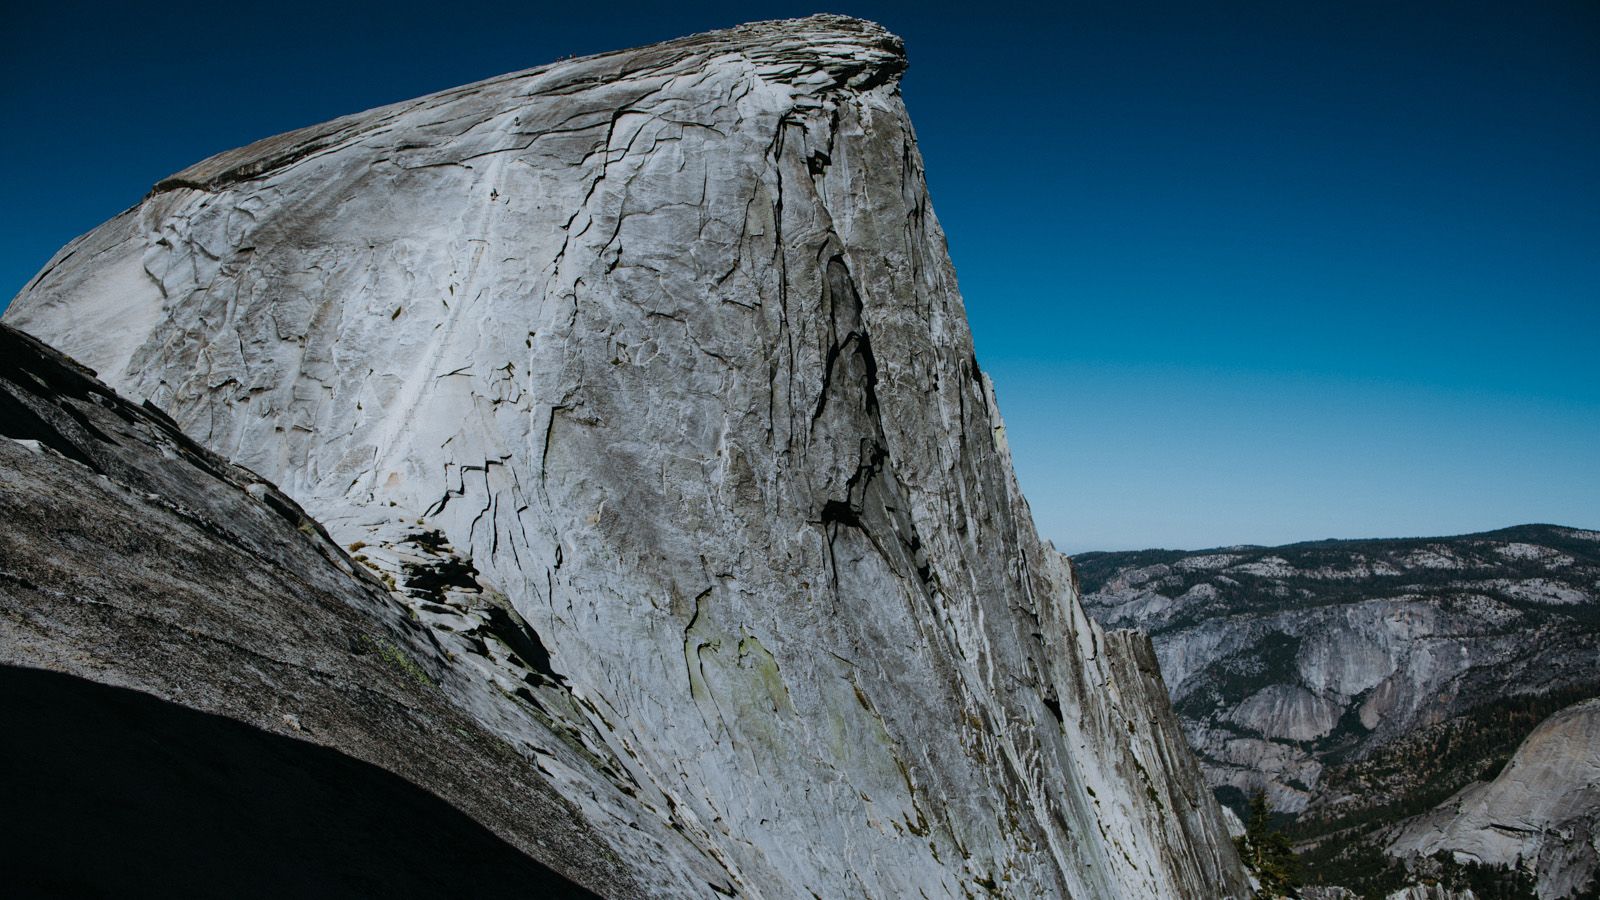 A couple of days later, an early rise and a brisk morning hike brings us to the base of Yosemite's iconic Half Dome. Some of the first people we have seen in days are barely visible on the Cable Route heading up the bleached stripe on the east side of the dome.